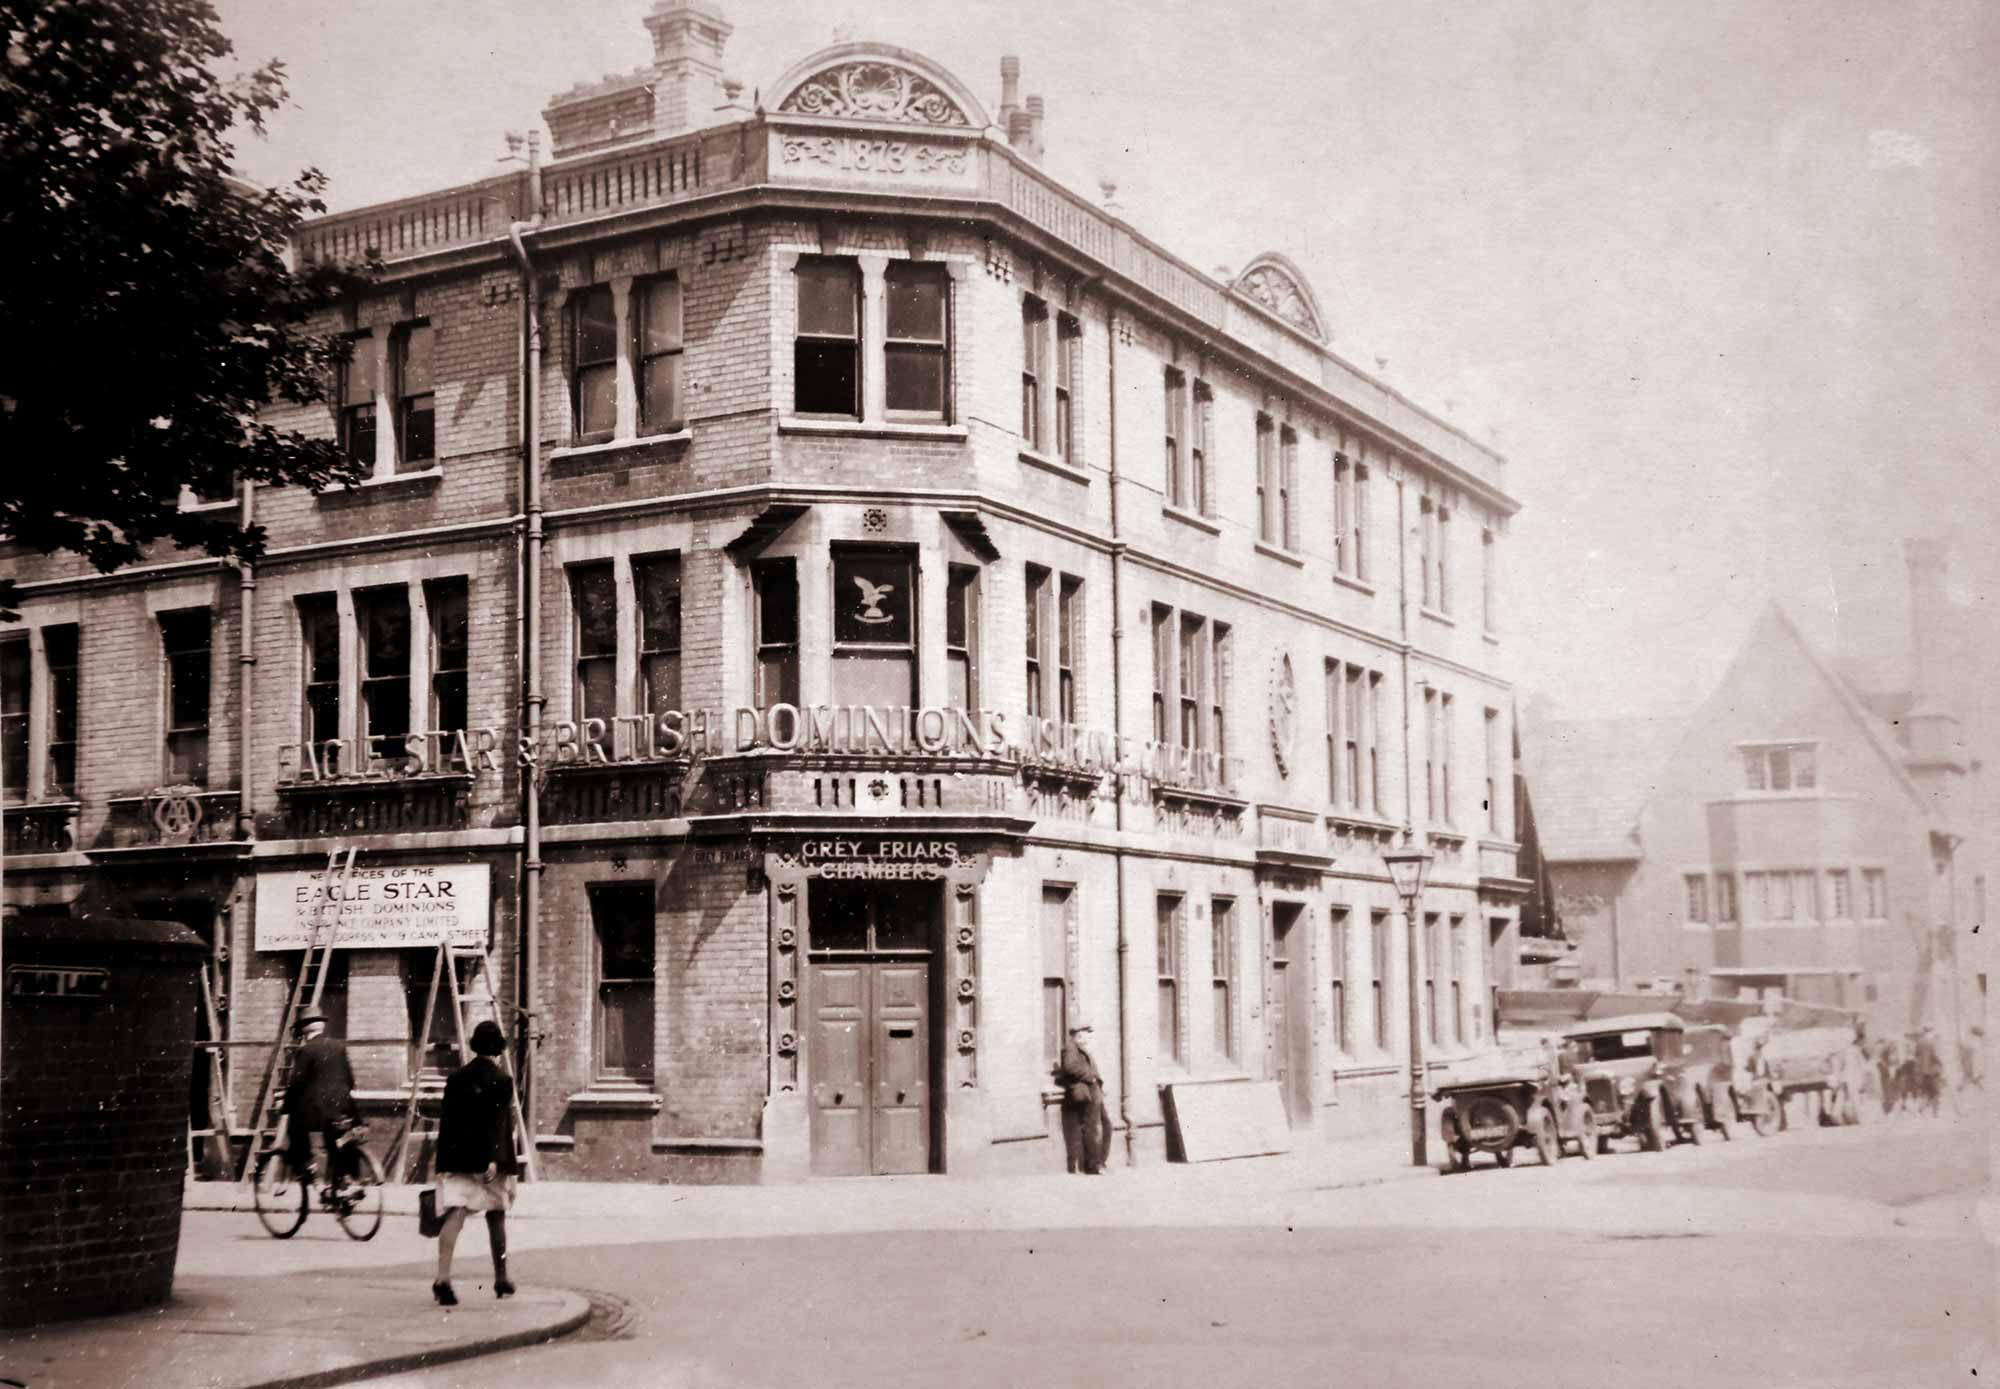 Corner of Friar Lane and Grey Friars, this building was the location of the Leicester City Council Fostering & Adoption Centre -